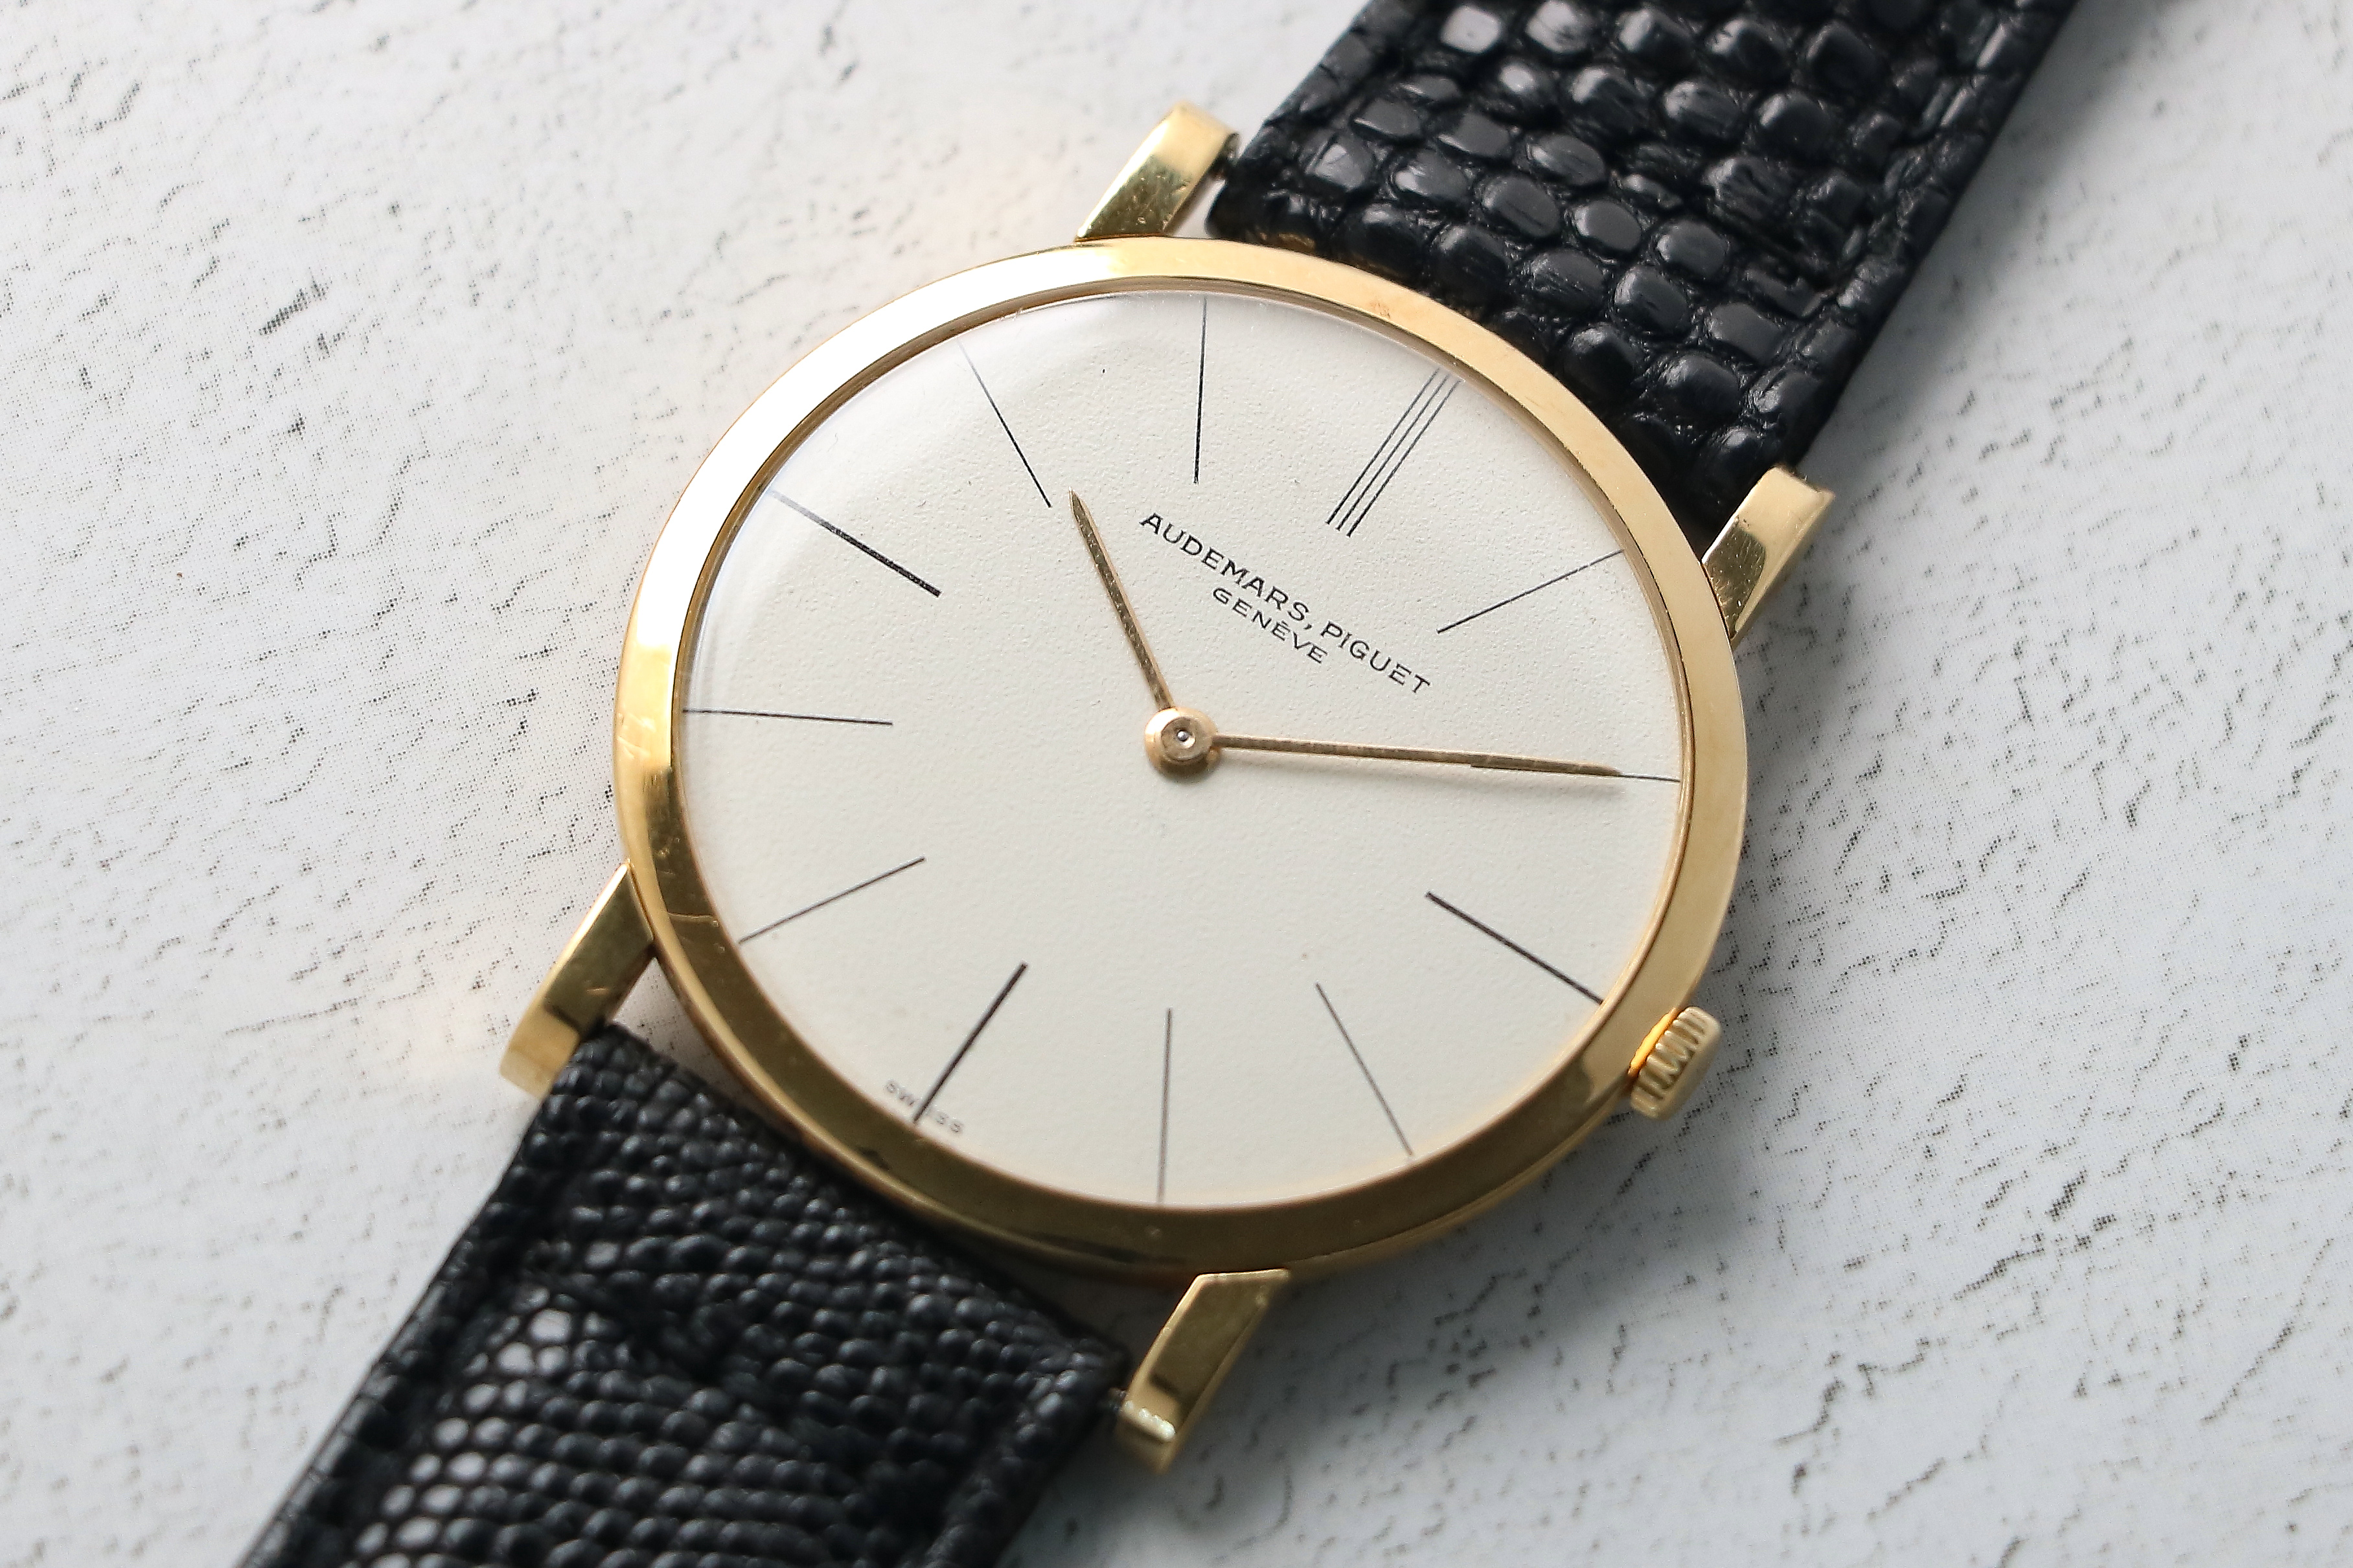 1961 AUDEMARS PIGUET ULTRA THIN 18KT YG • Vintage Watches